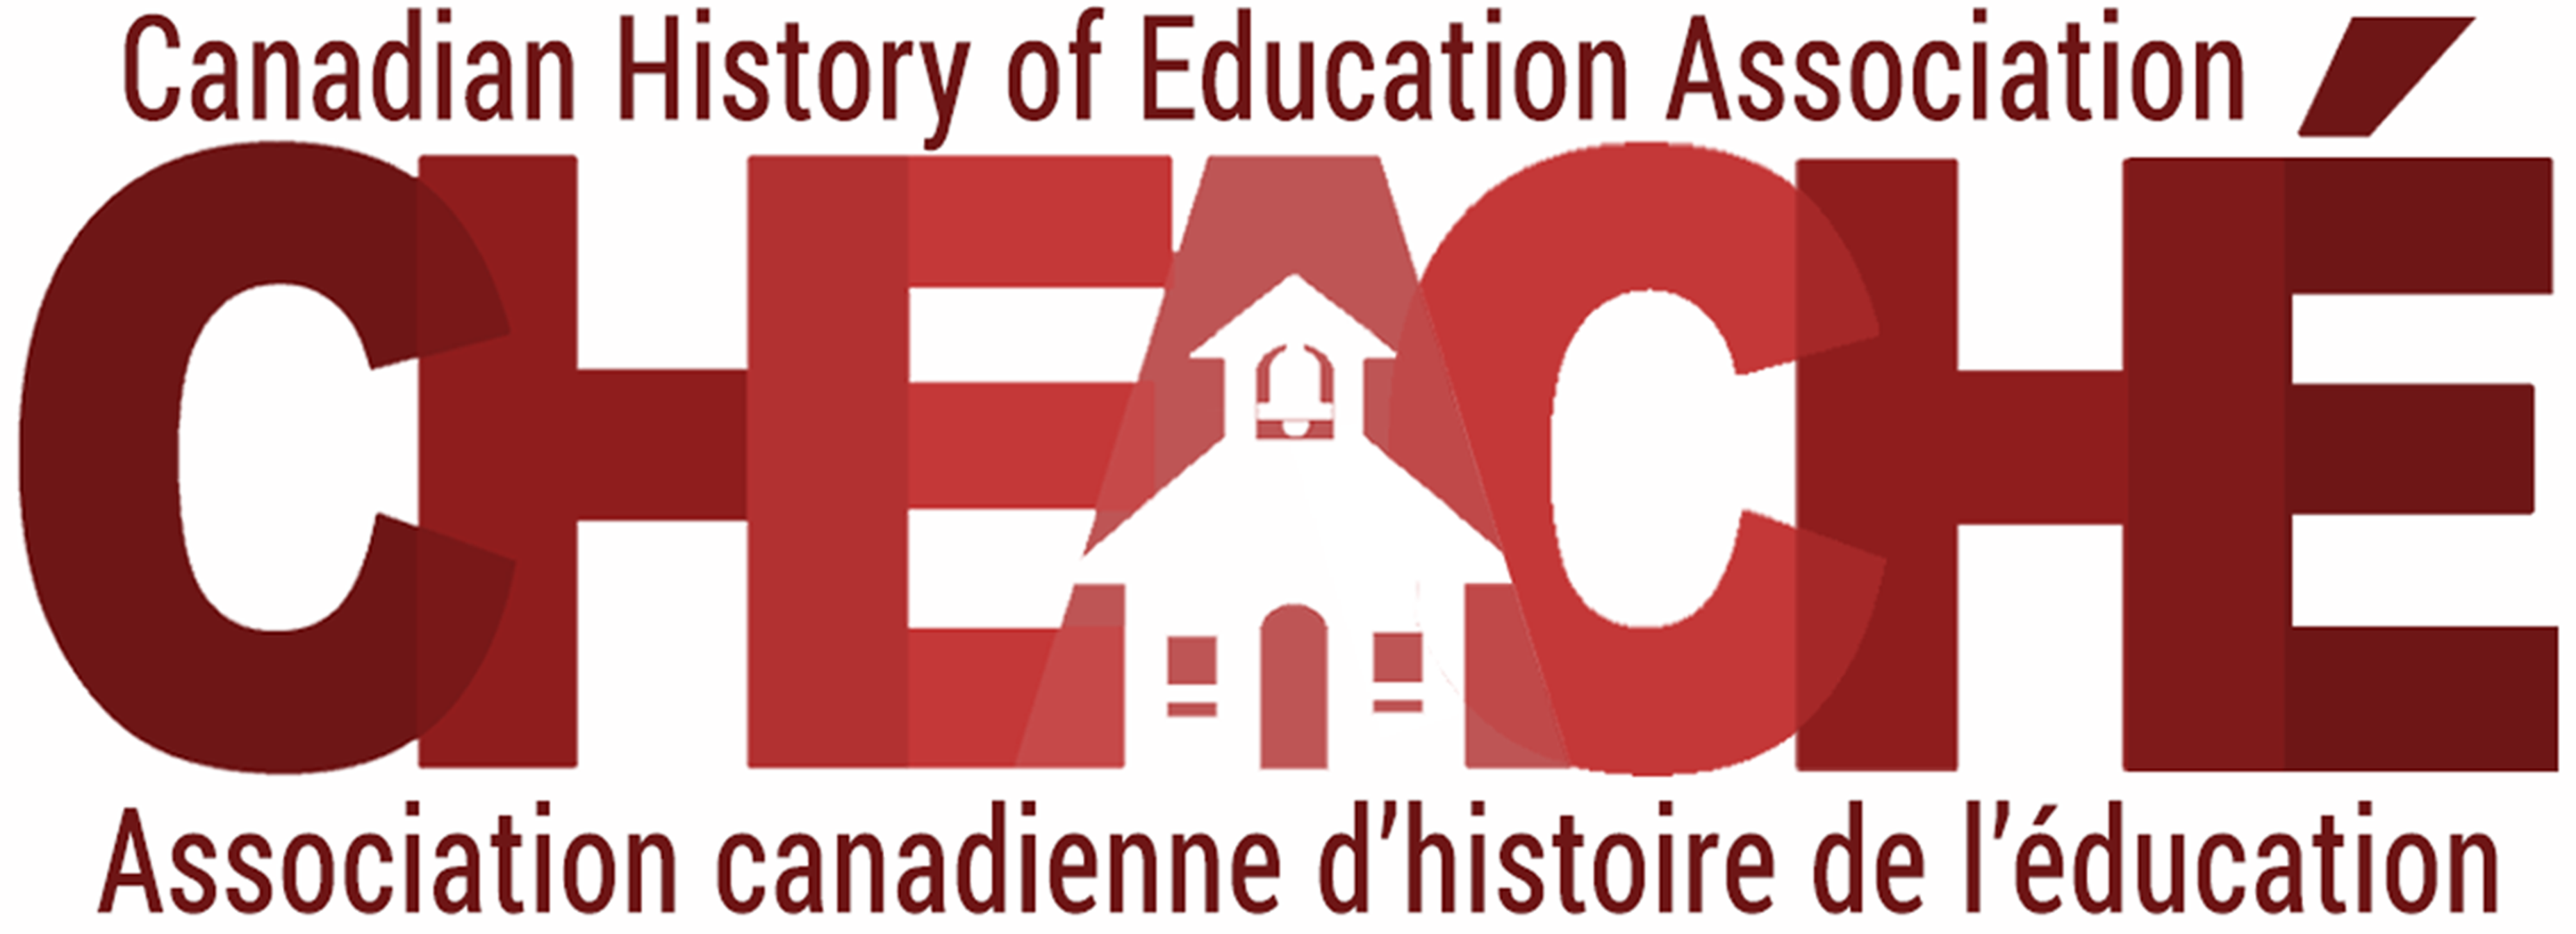 Canadian History of Education Association